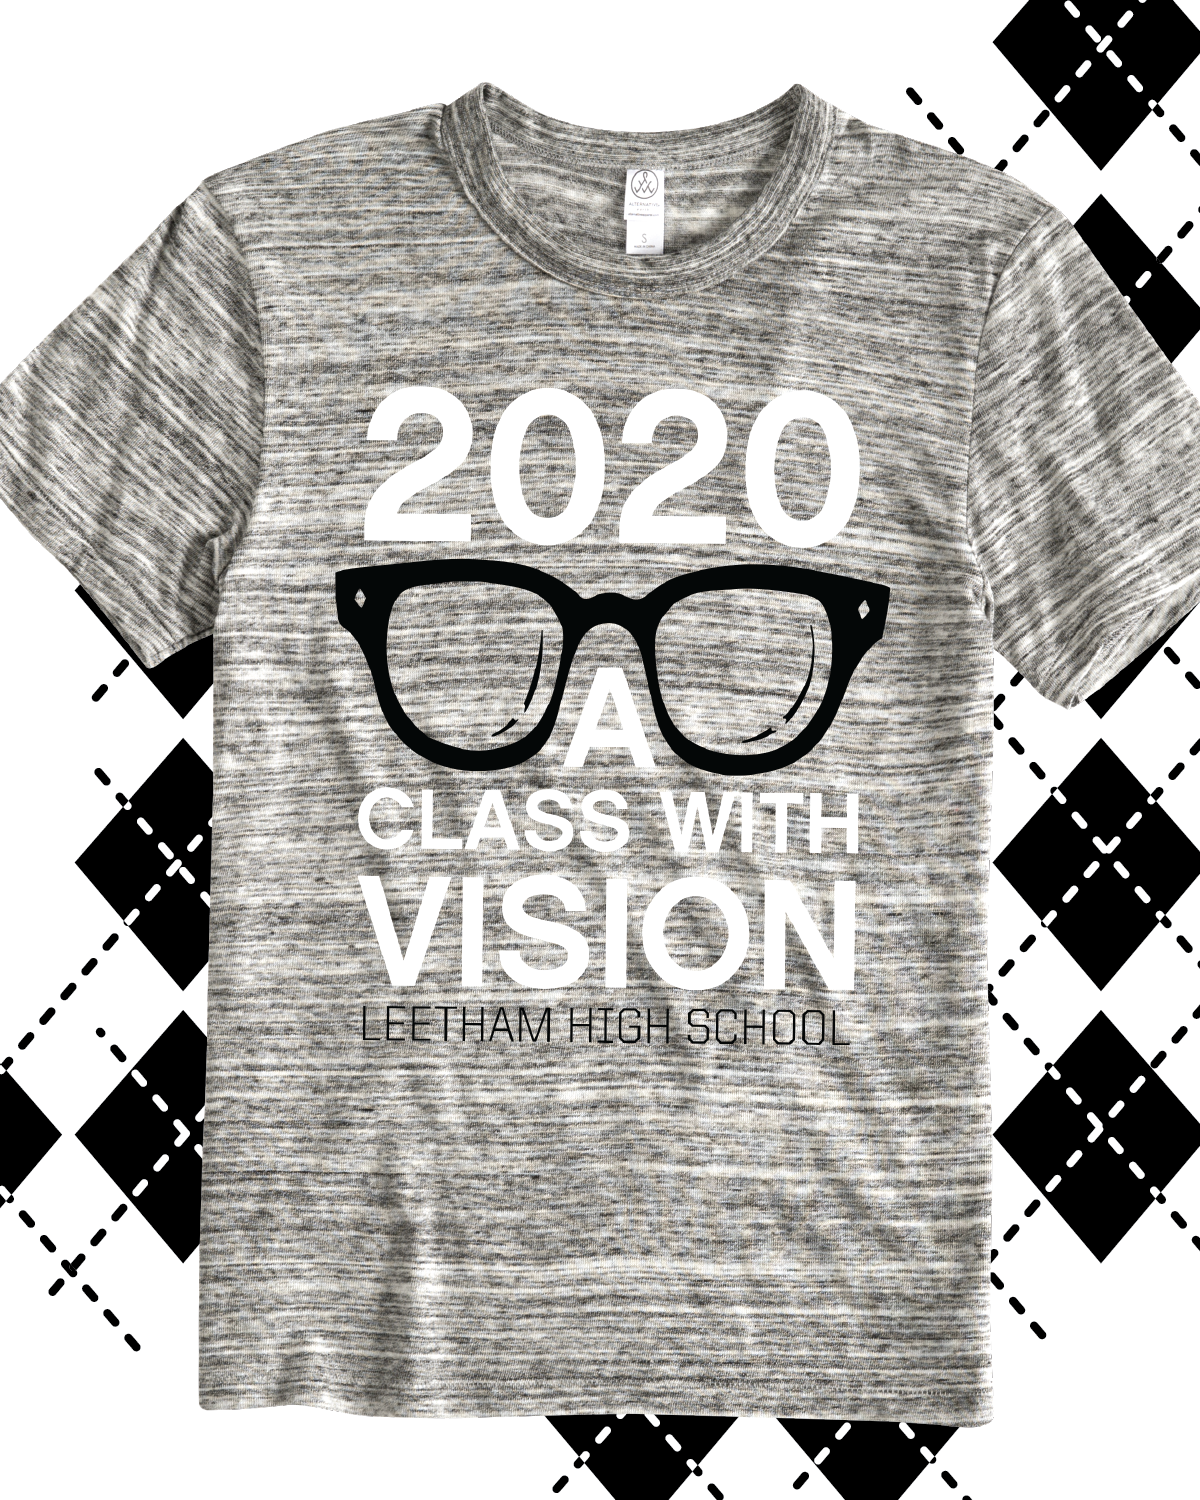 School Shirt Design Ideas 17 best images about tshirt designs on pinterest school shirt designs t shirt printing design and hoodies 2020 A Class With Vision Class Of 2020 T Shirt Design Idea For Custom